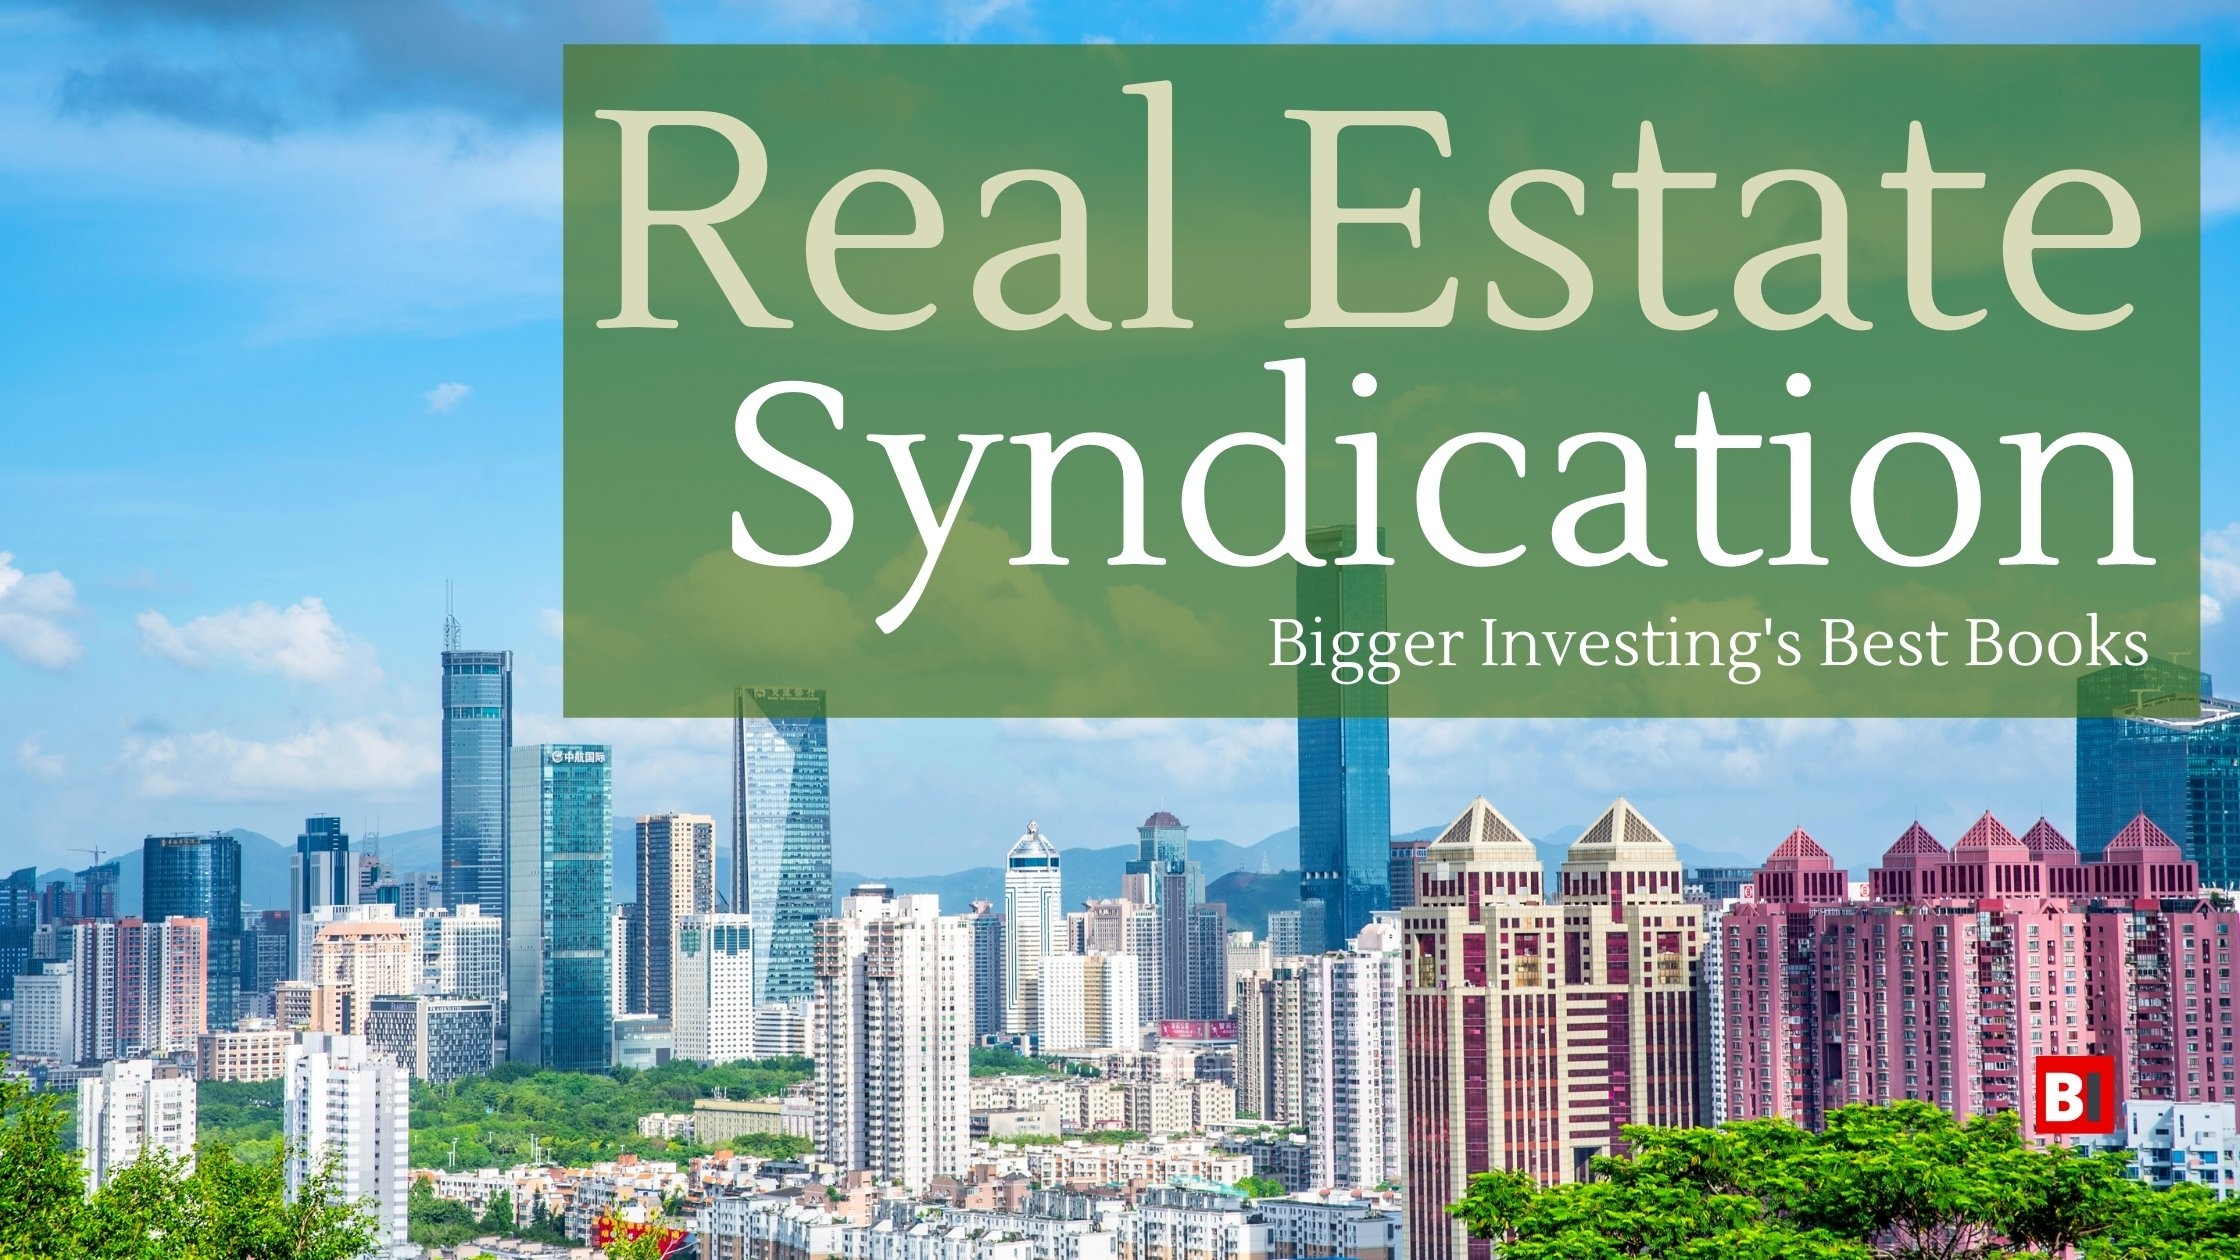 Best Books on Real Estate Syndication